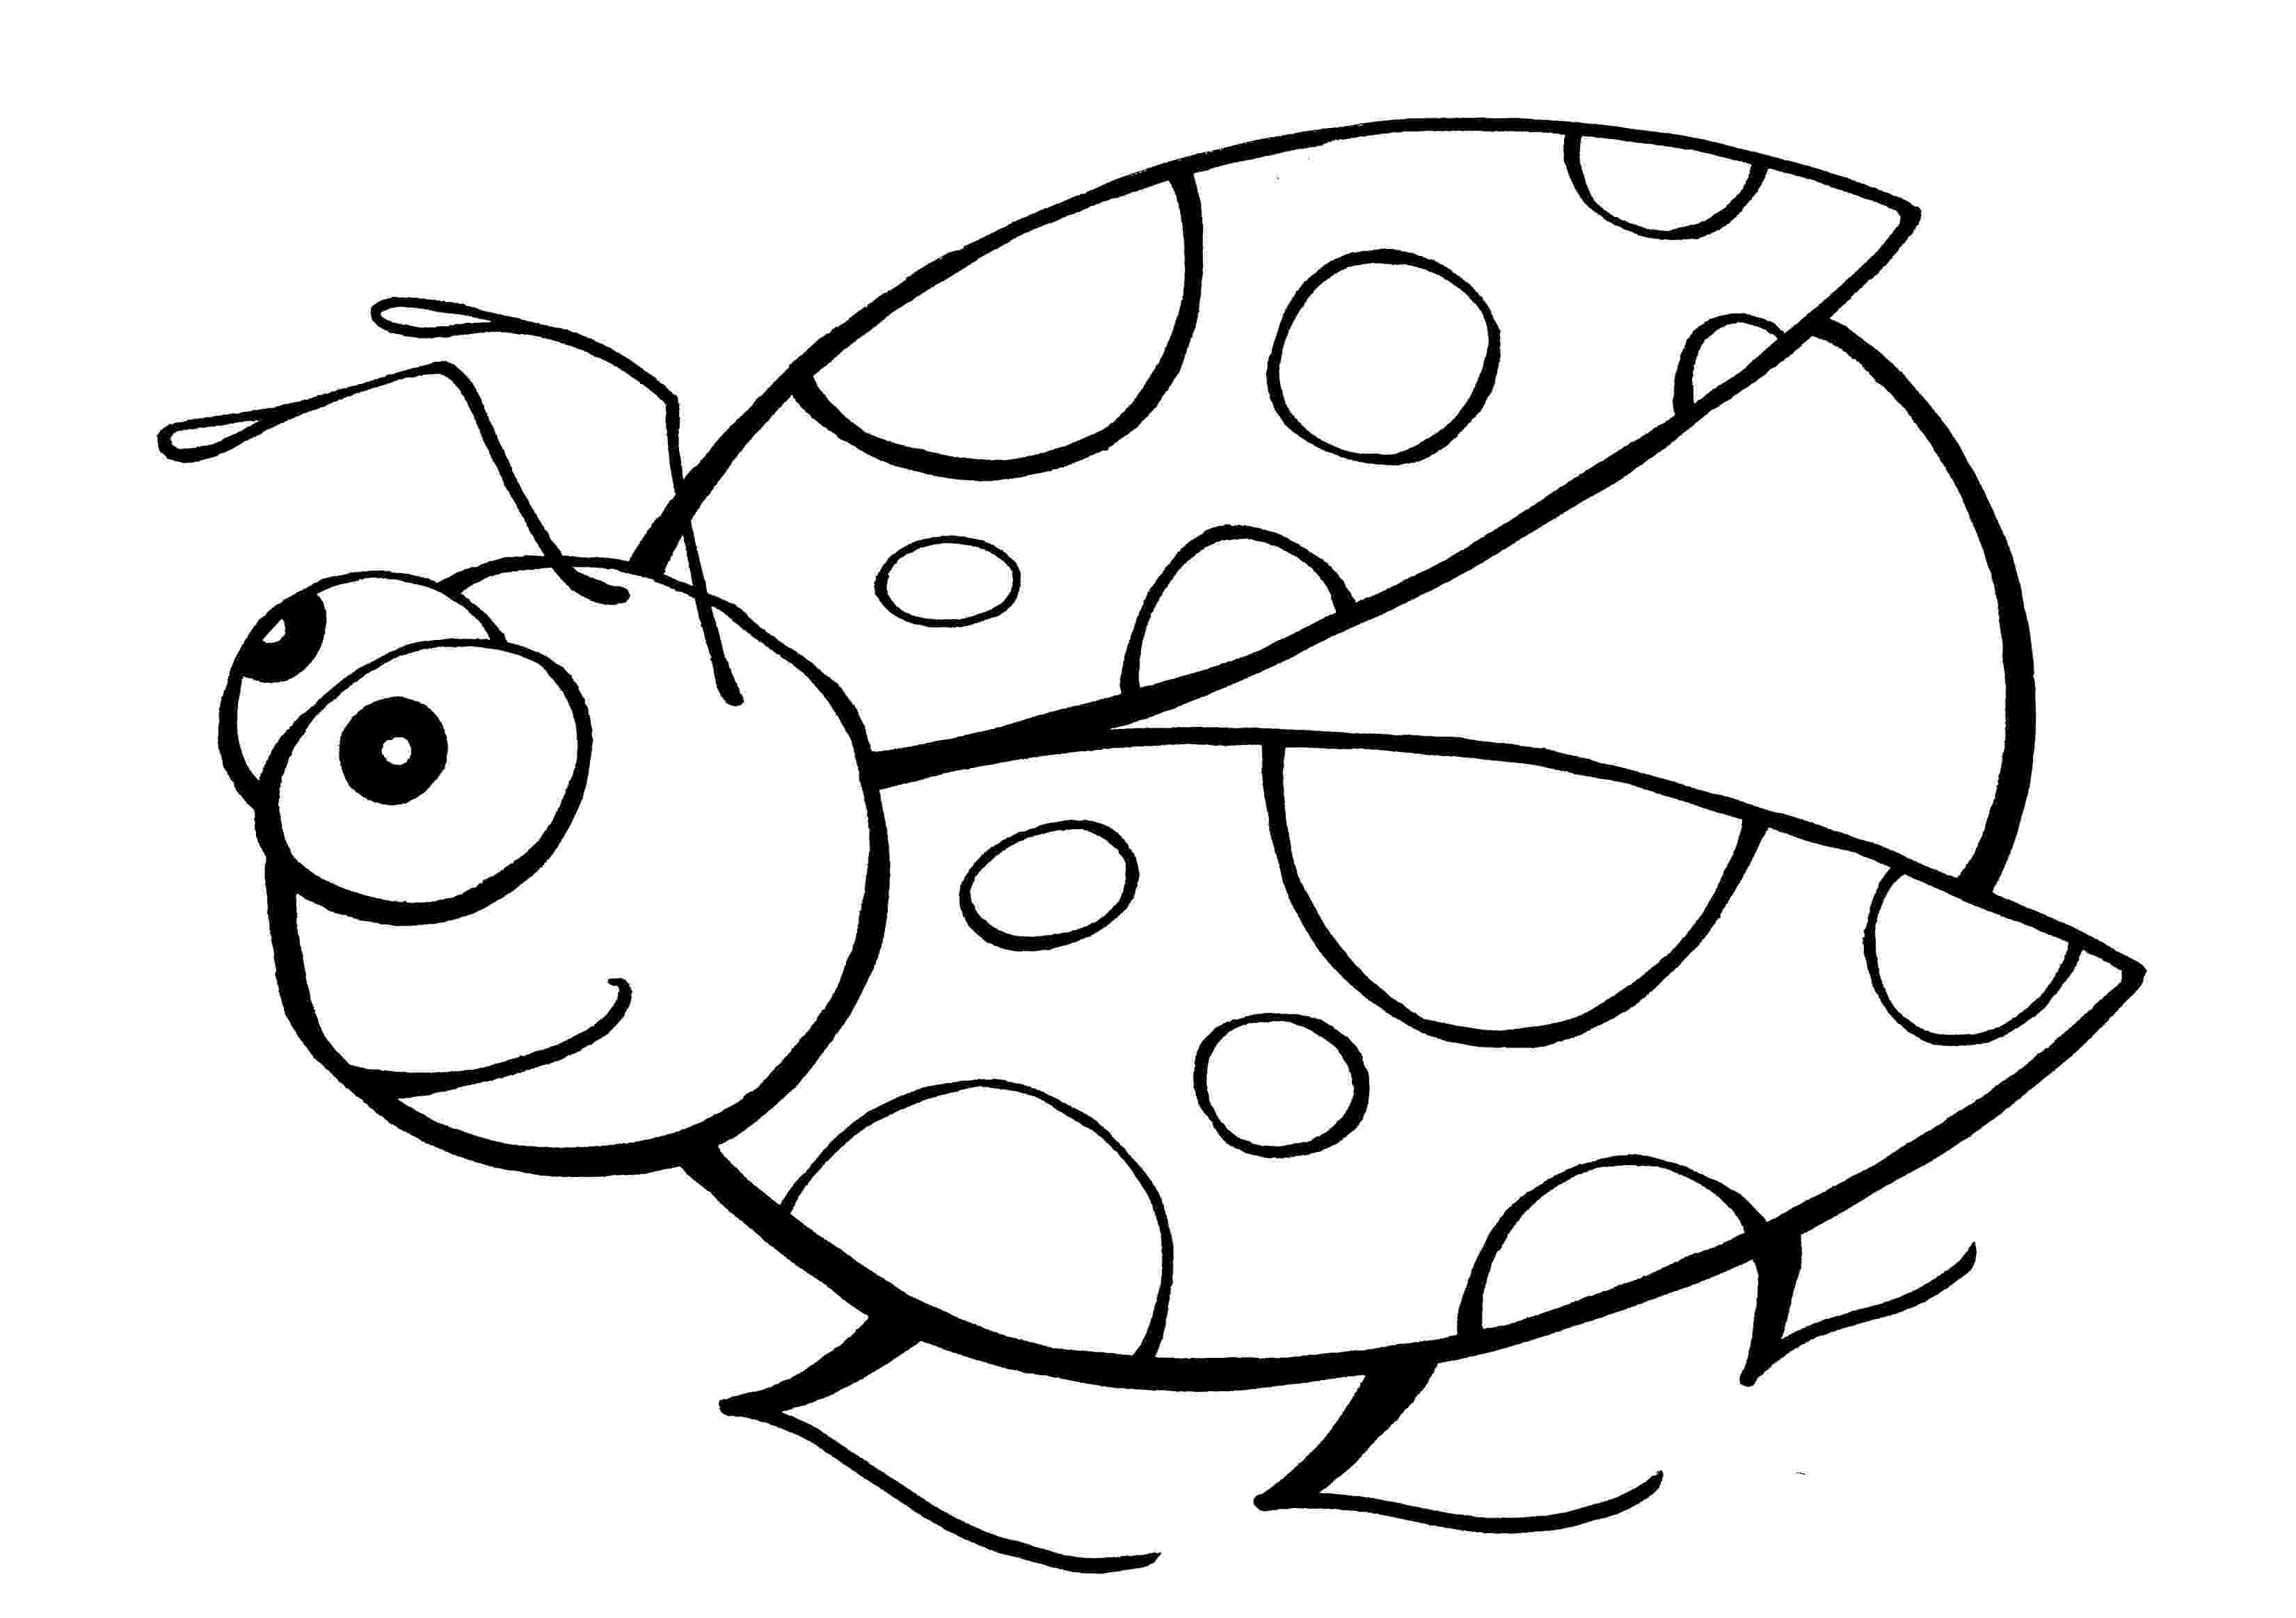 ladybug coloring sheet ladybug coloring pages to download and print for free coloring sheet ladybug